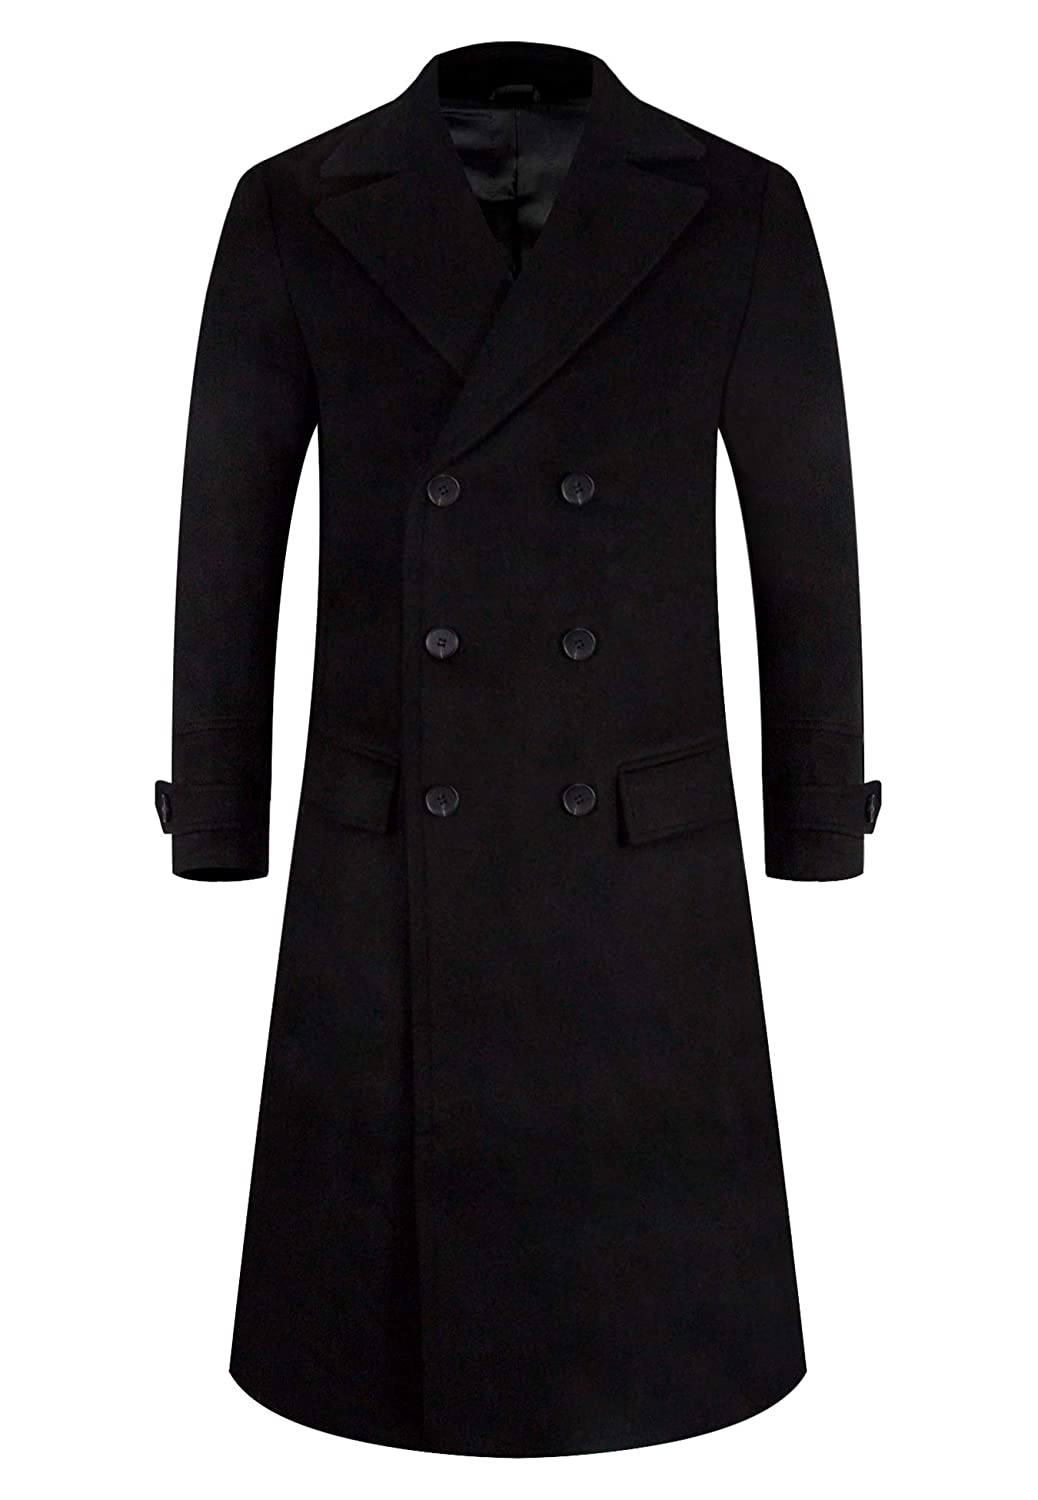 APTRO Men's Wool Coat Trench Coat Long Winter Jacket